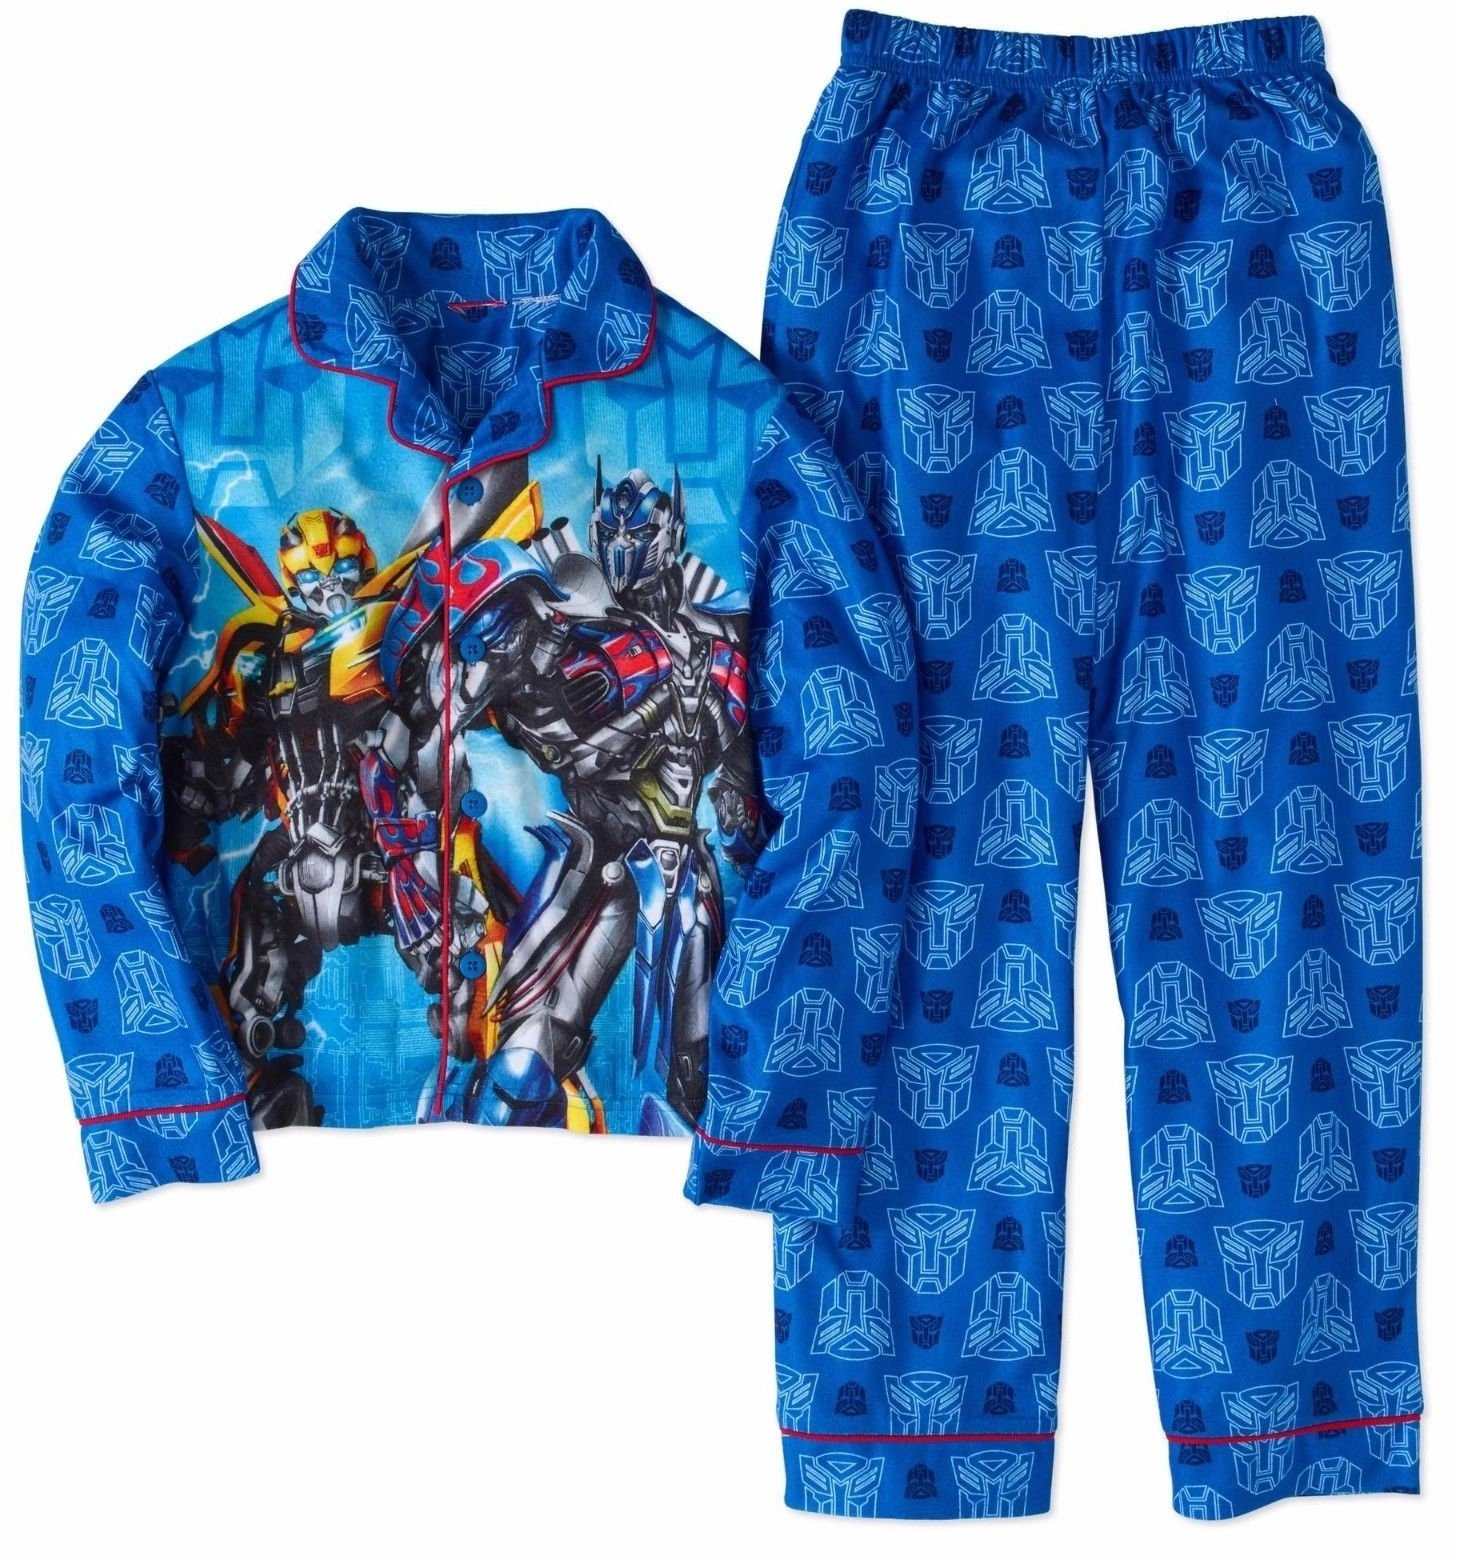 Transformers 2 Piece Button Front Pajama Set (Small 6/7)